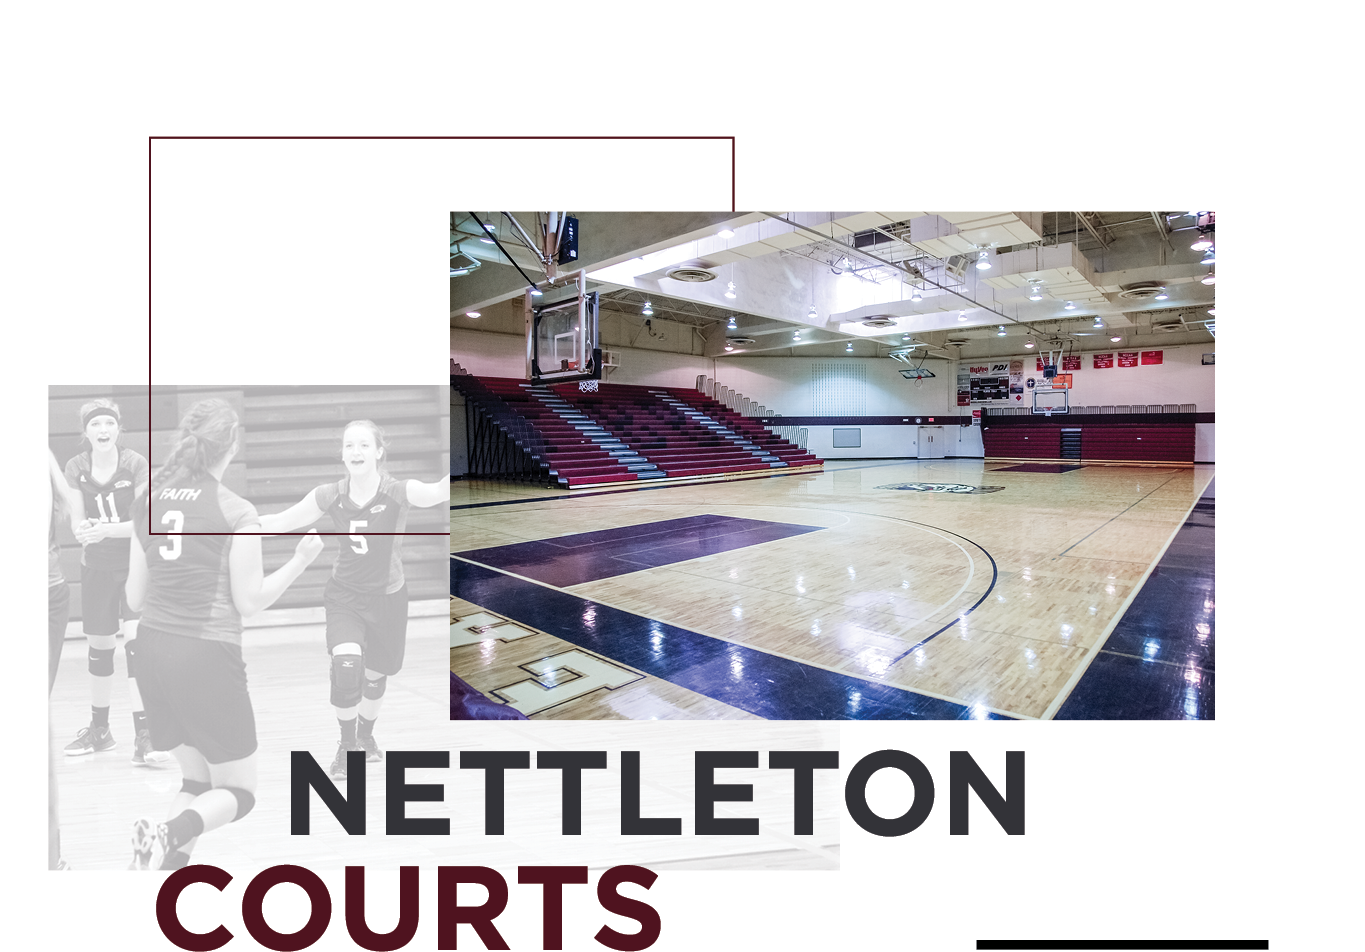 Nettleton Courts